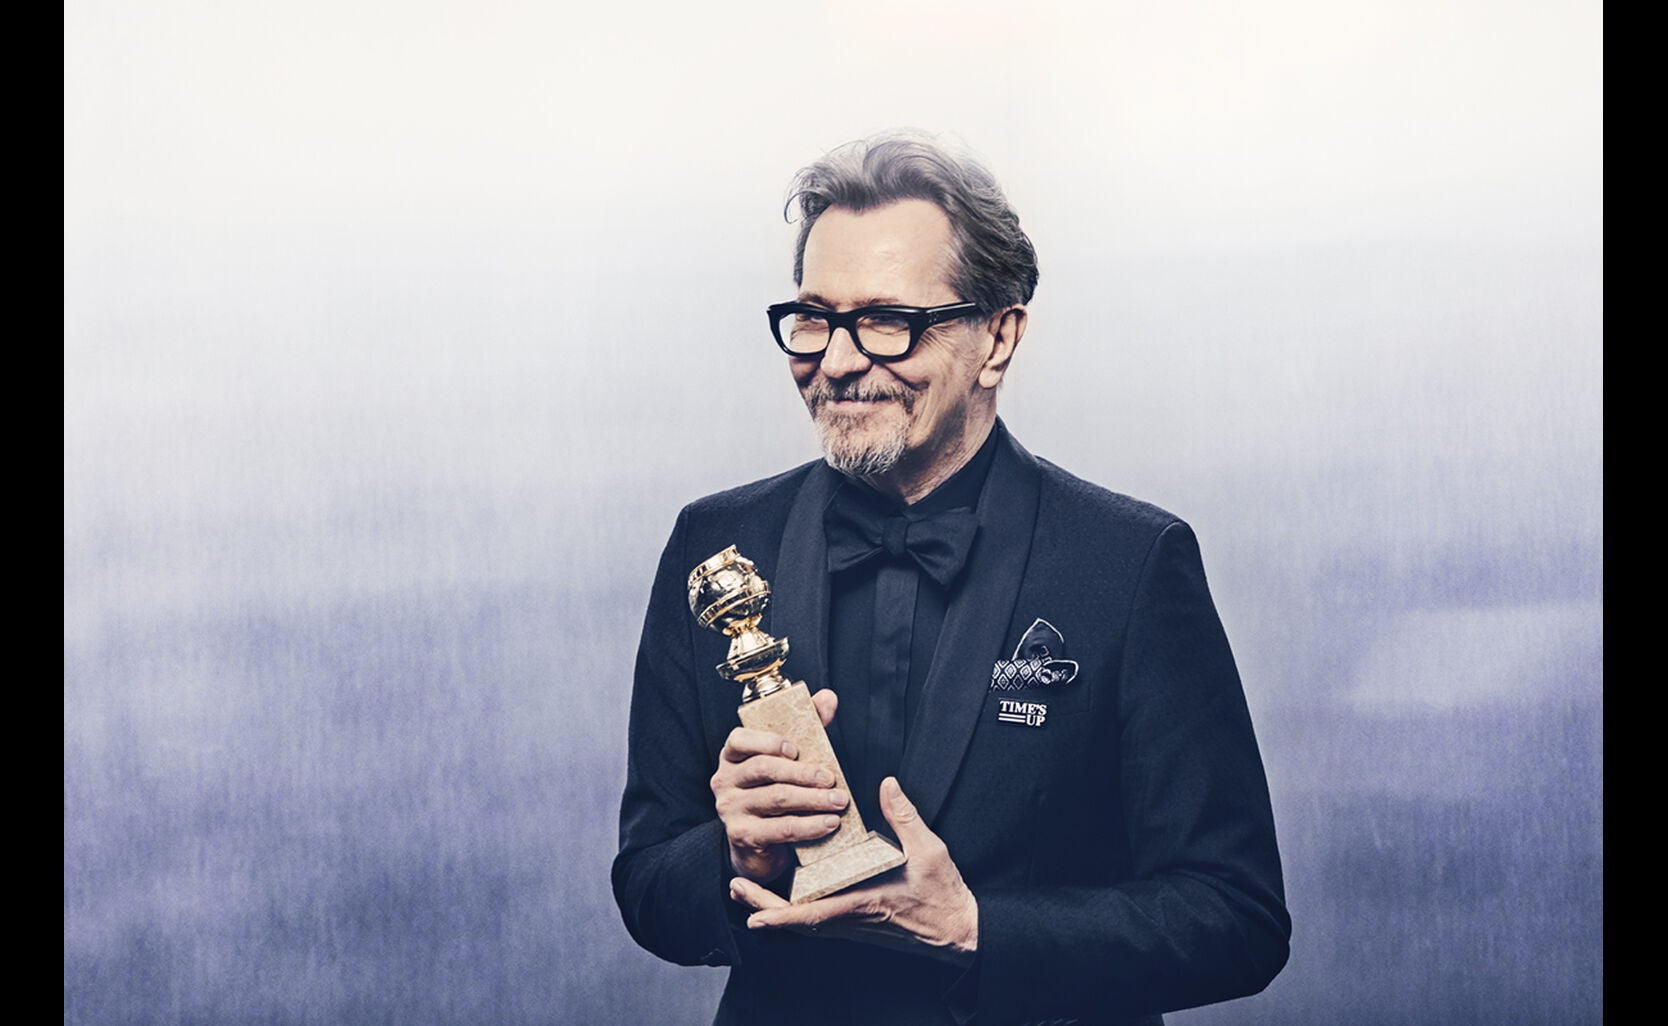 Gary Oldman, Best Performance by an Actor in a Motion Picture, Drama - Darkest Hour